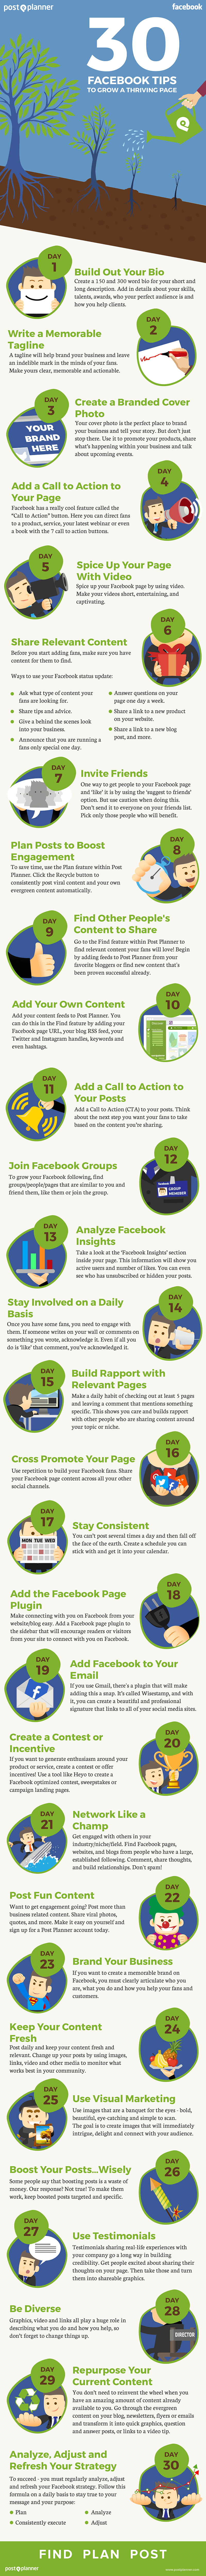 30 Facebook Page Tips